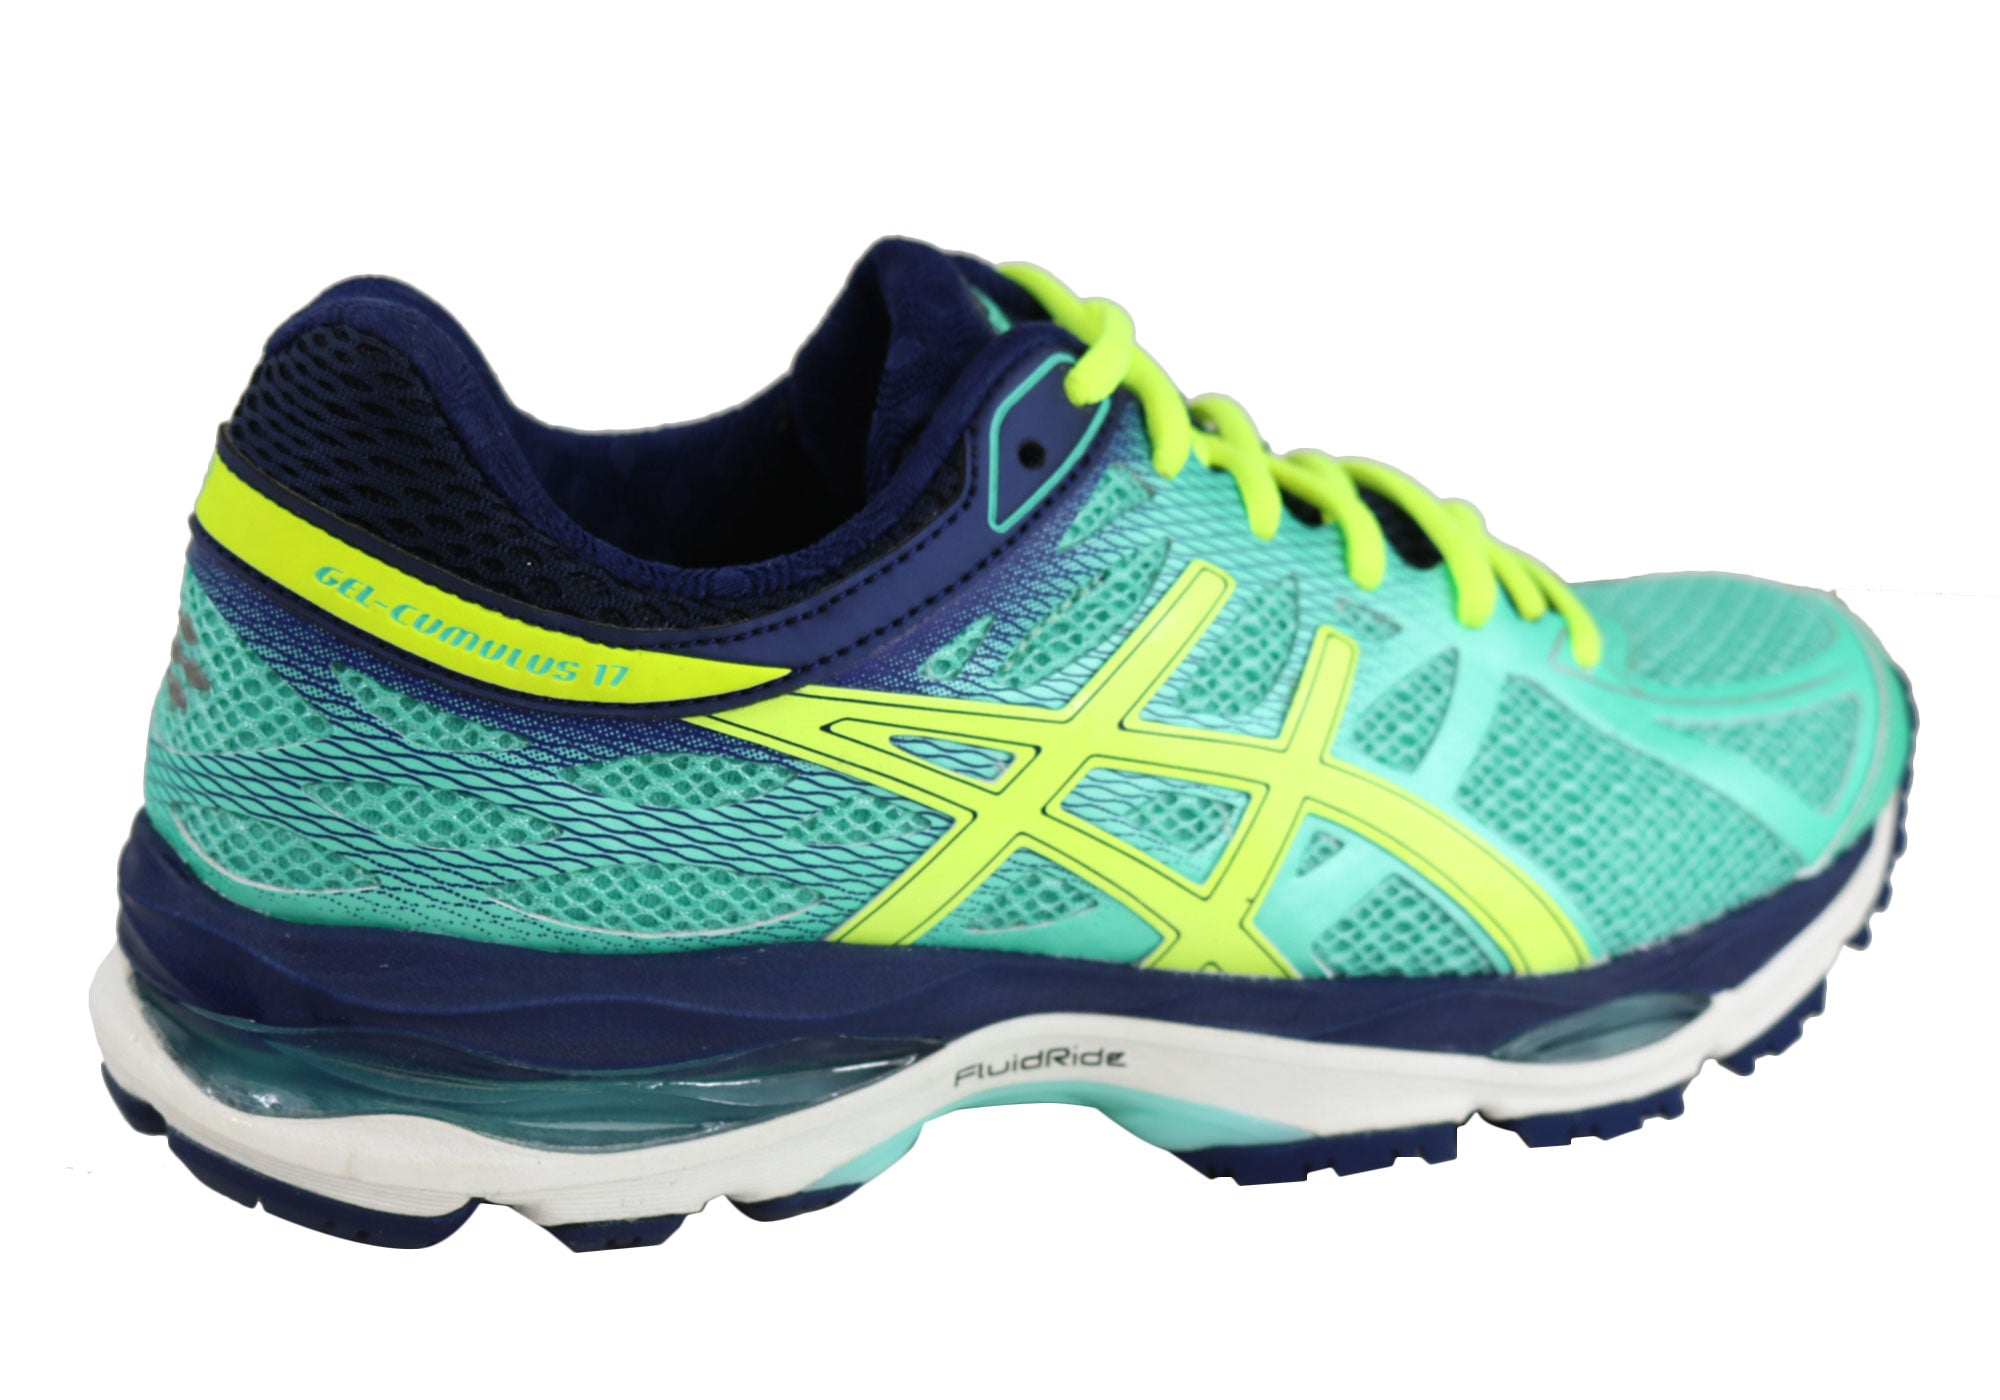 meilleur site web 955e9 5aad0 Asics Gel-Cumulus 17 Womens Cushioned Sport/Running Shoes Narrow Width